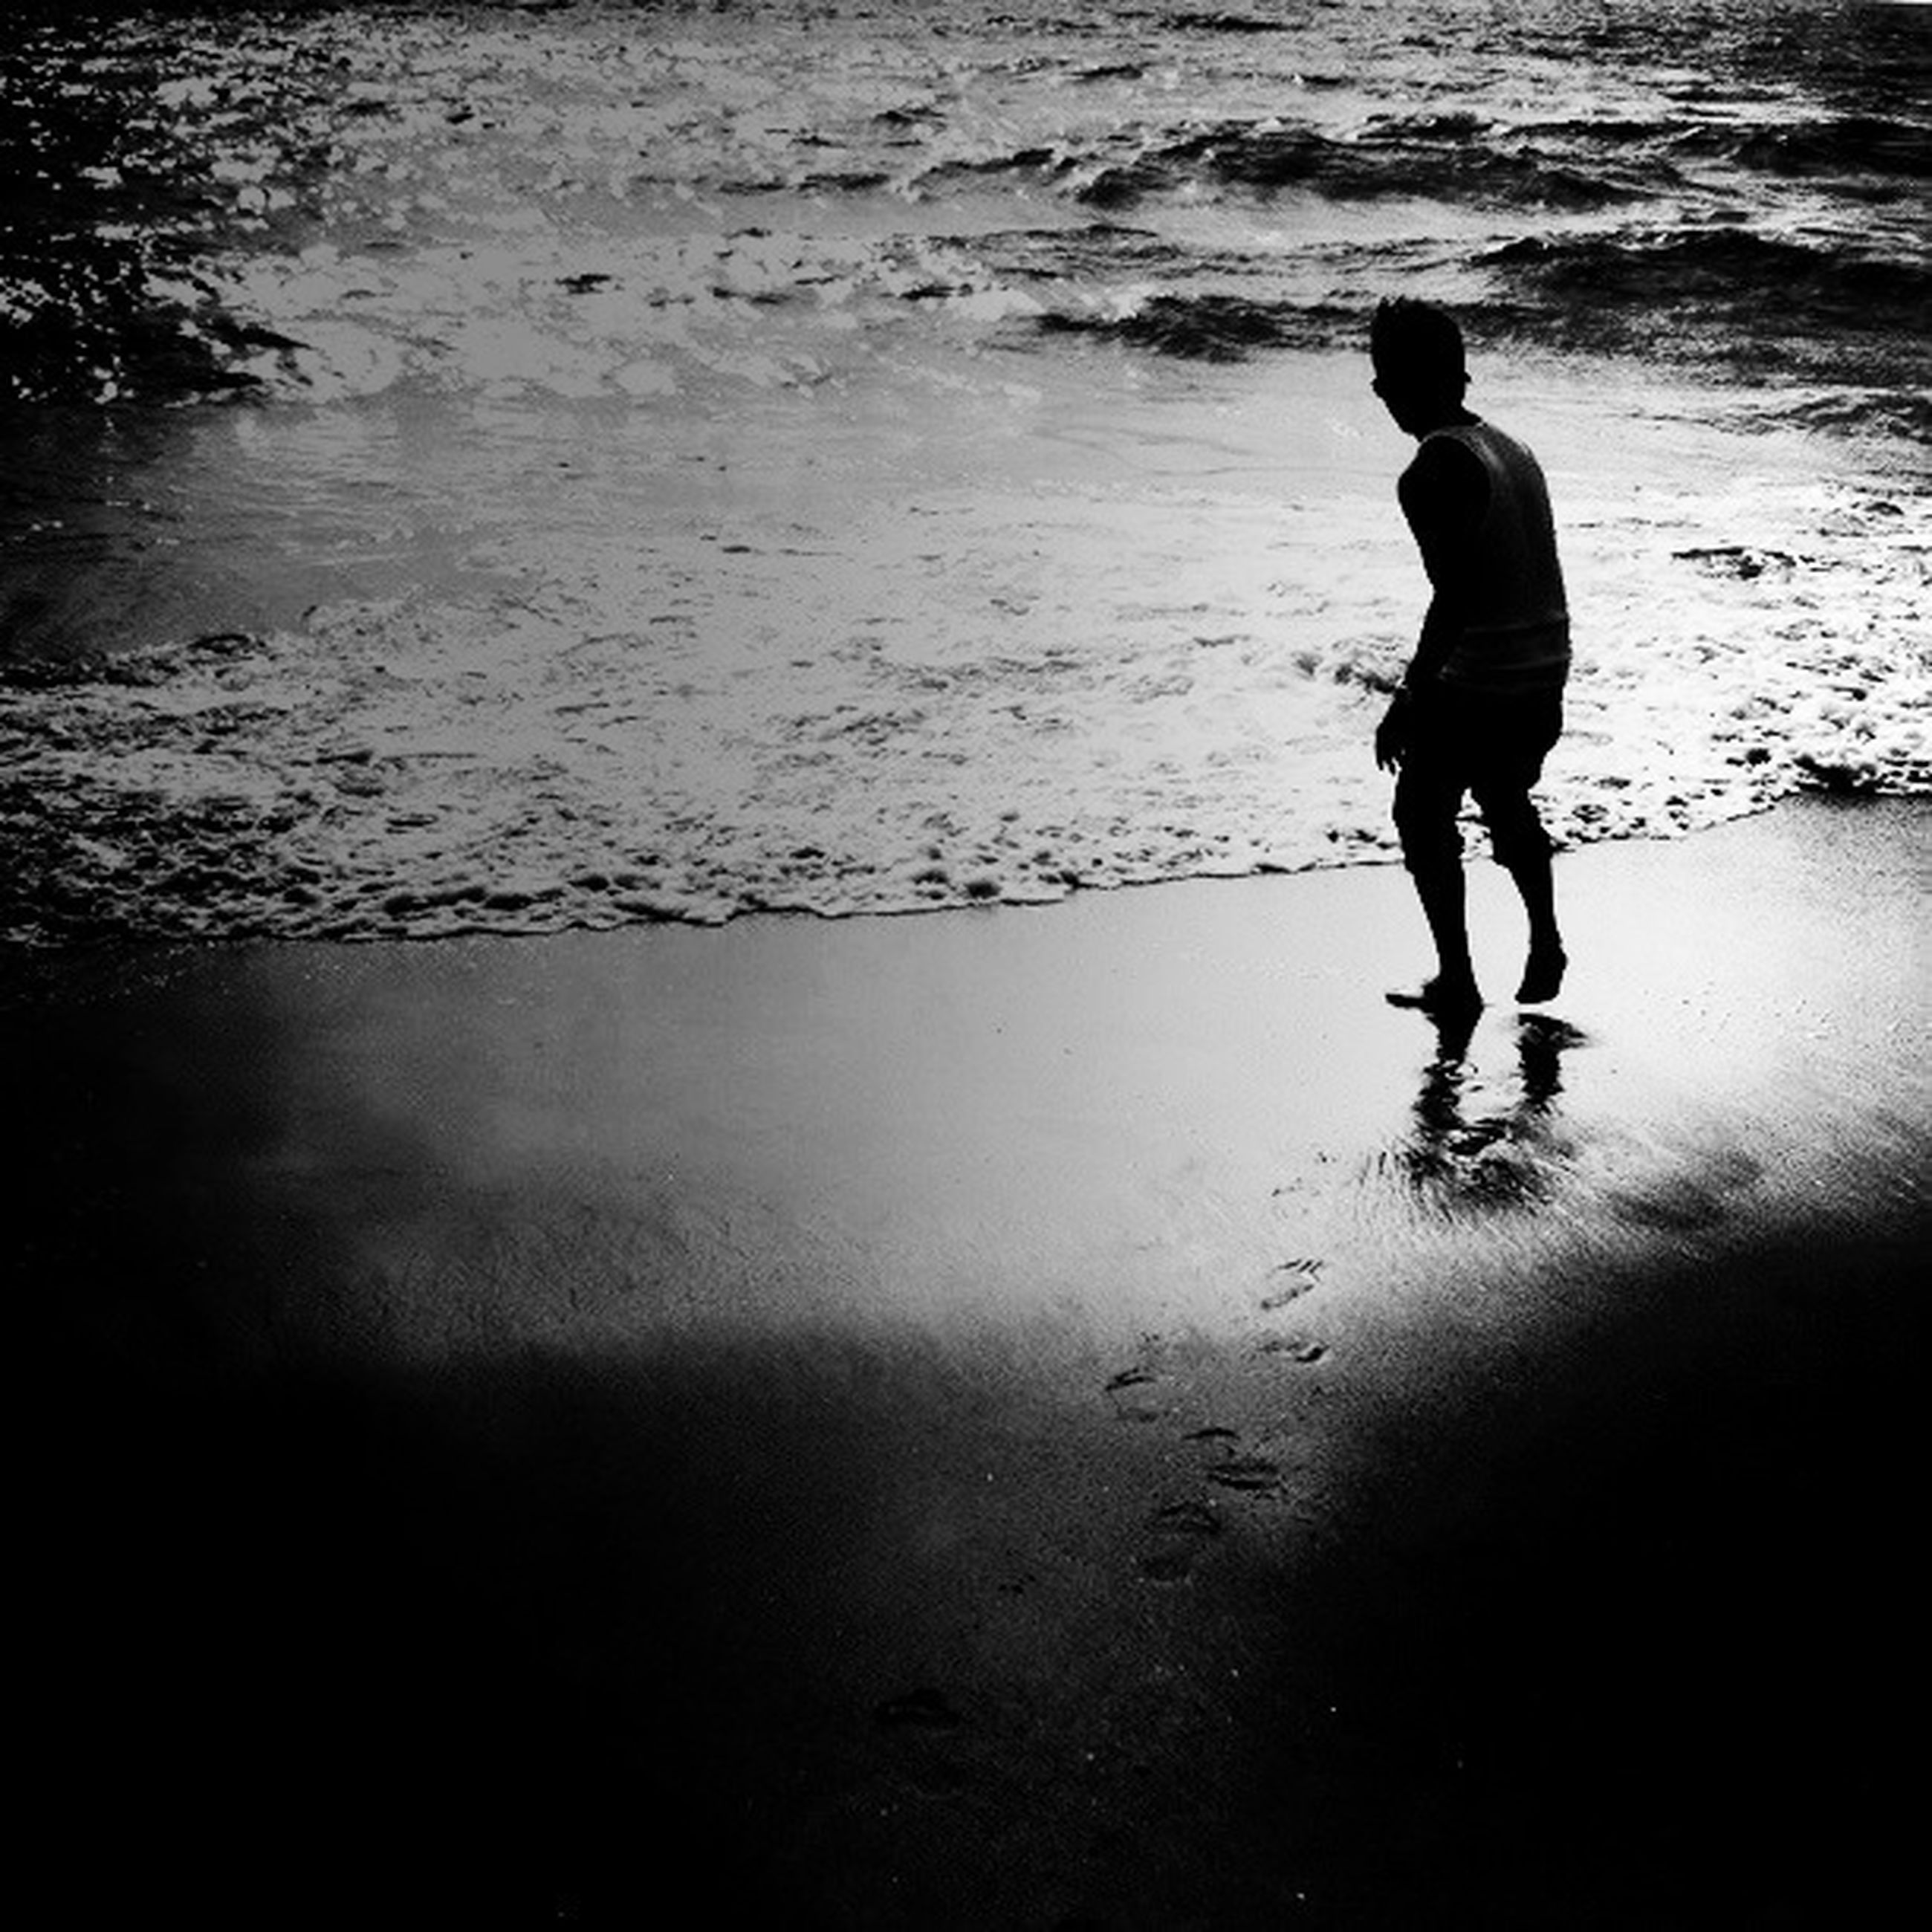 full length, water, lifestyles, leisure activity, men, standing, walking, beach, rear view, shore, sea, silhouette, boys, childhood, reflection, nature, casual clothing, sunlight